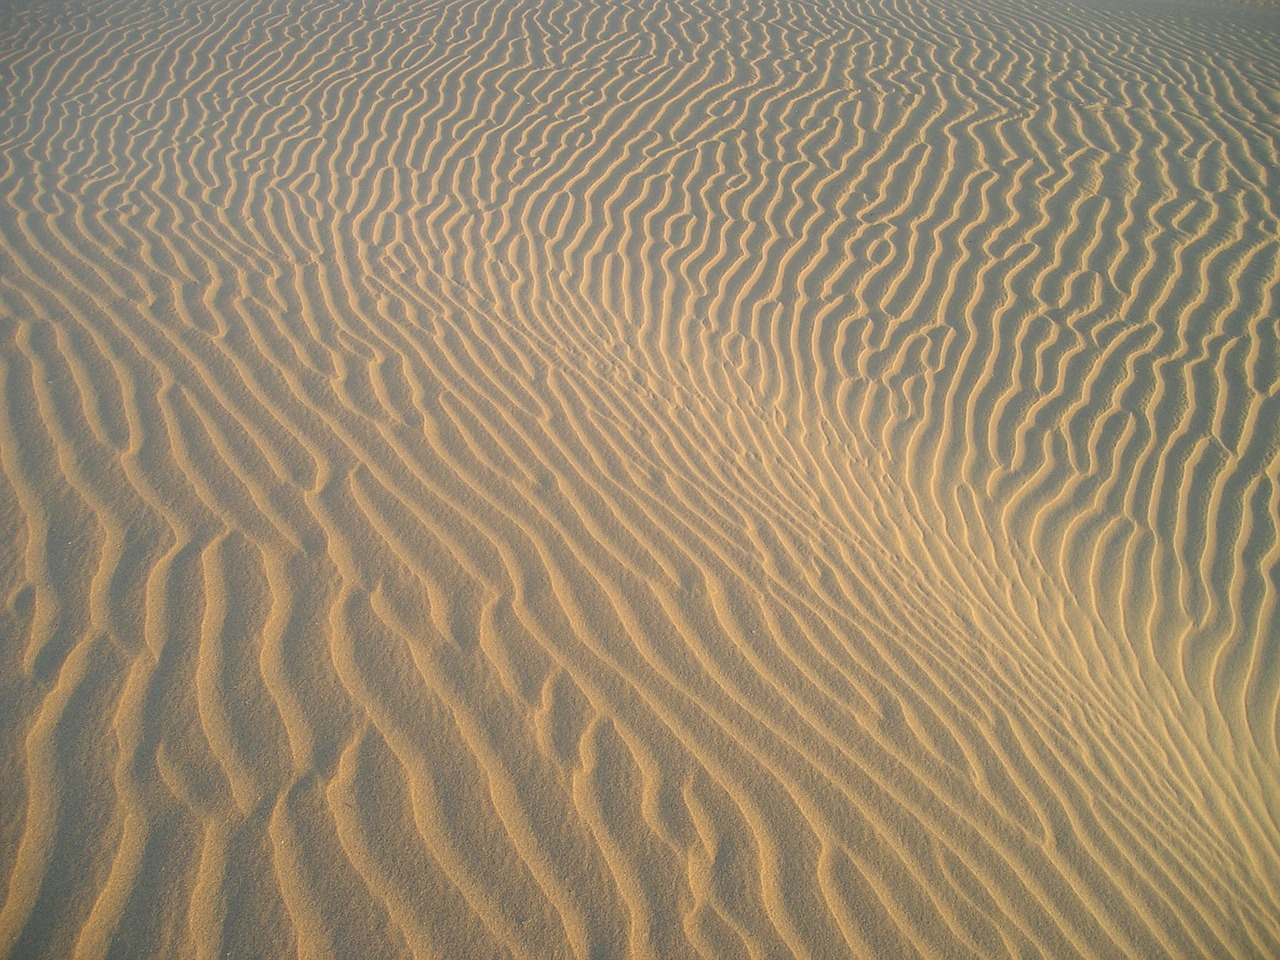 india,desert,sand pattern,sand,pattern,drift,drought,free pictures, free photos, free images, royalty free, free illustrations, public domain